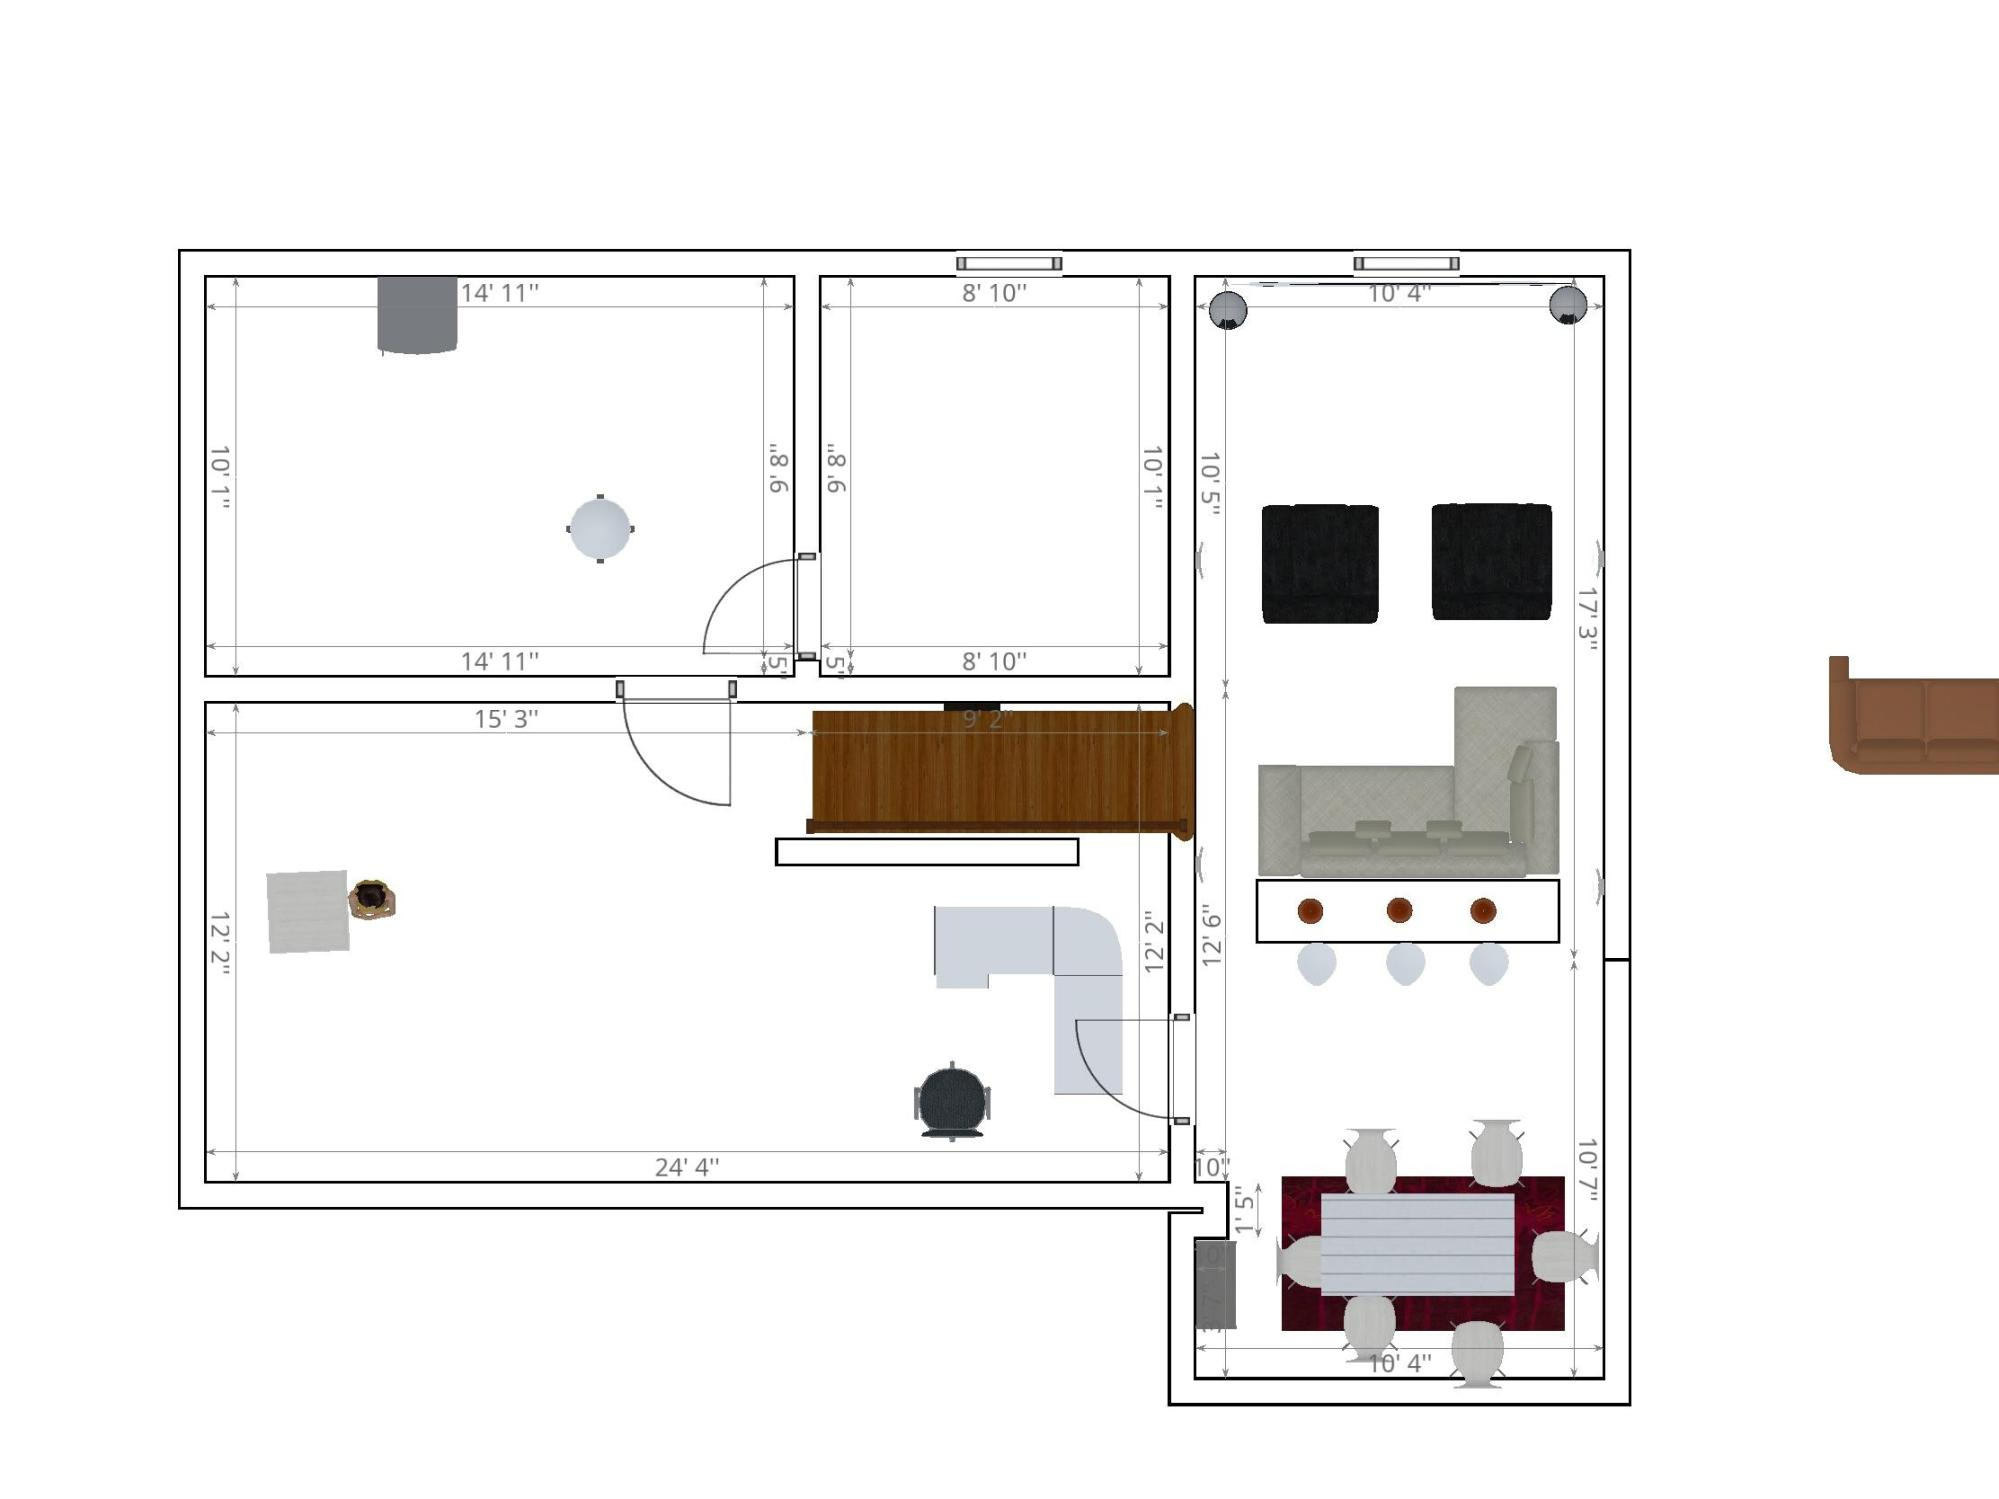 hight resolution of install placementany thoughts on this home theater set up room on the right is it too narrow should i move it s left wall over to the left